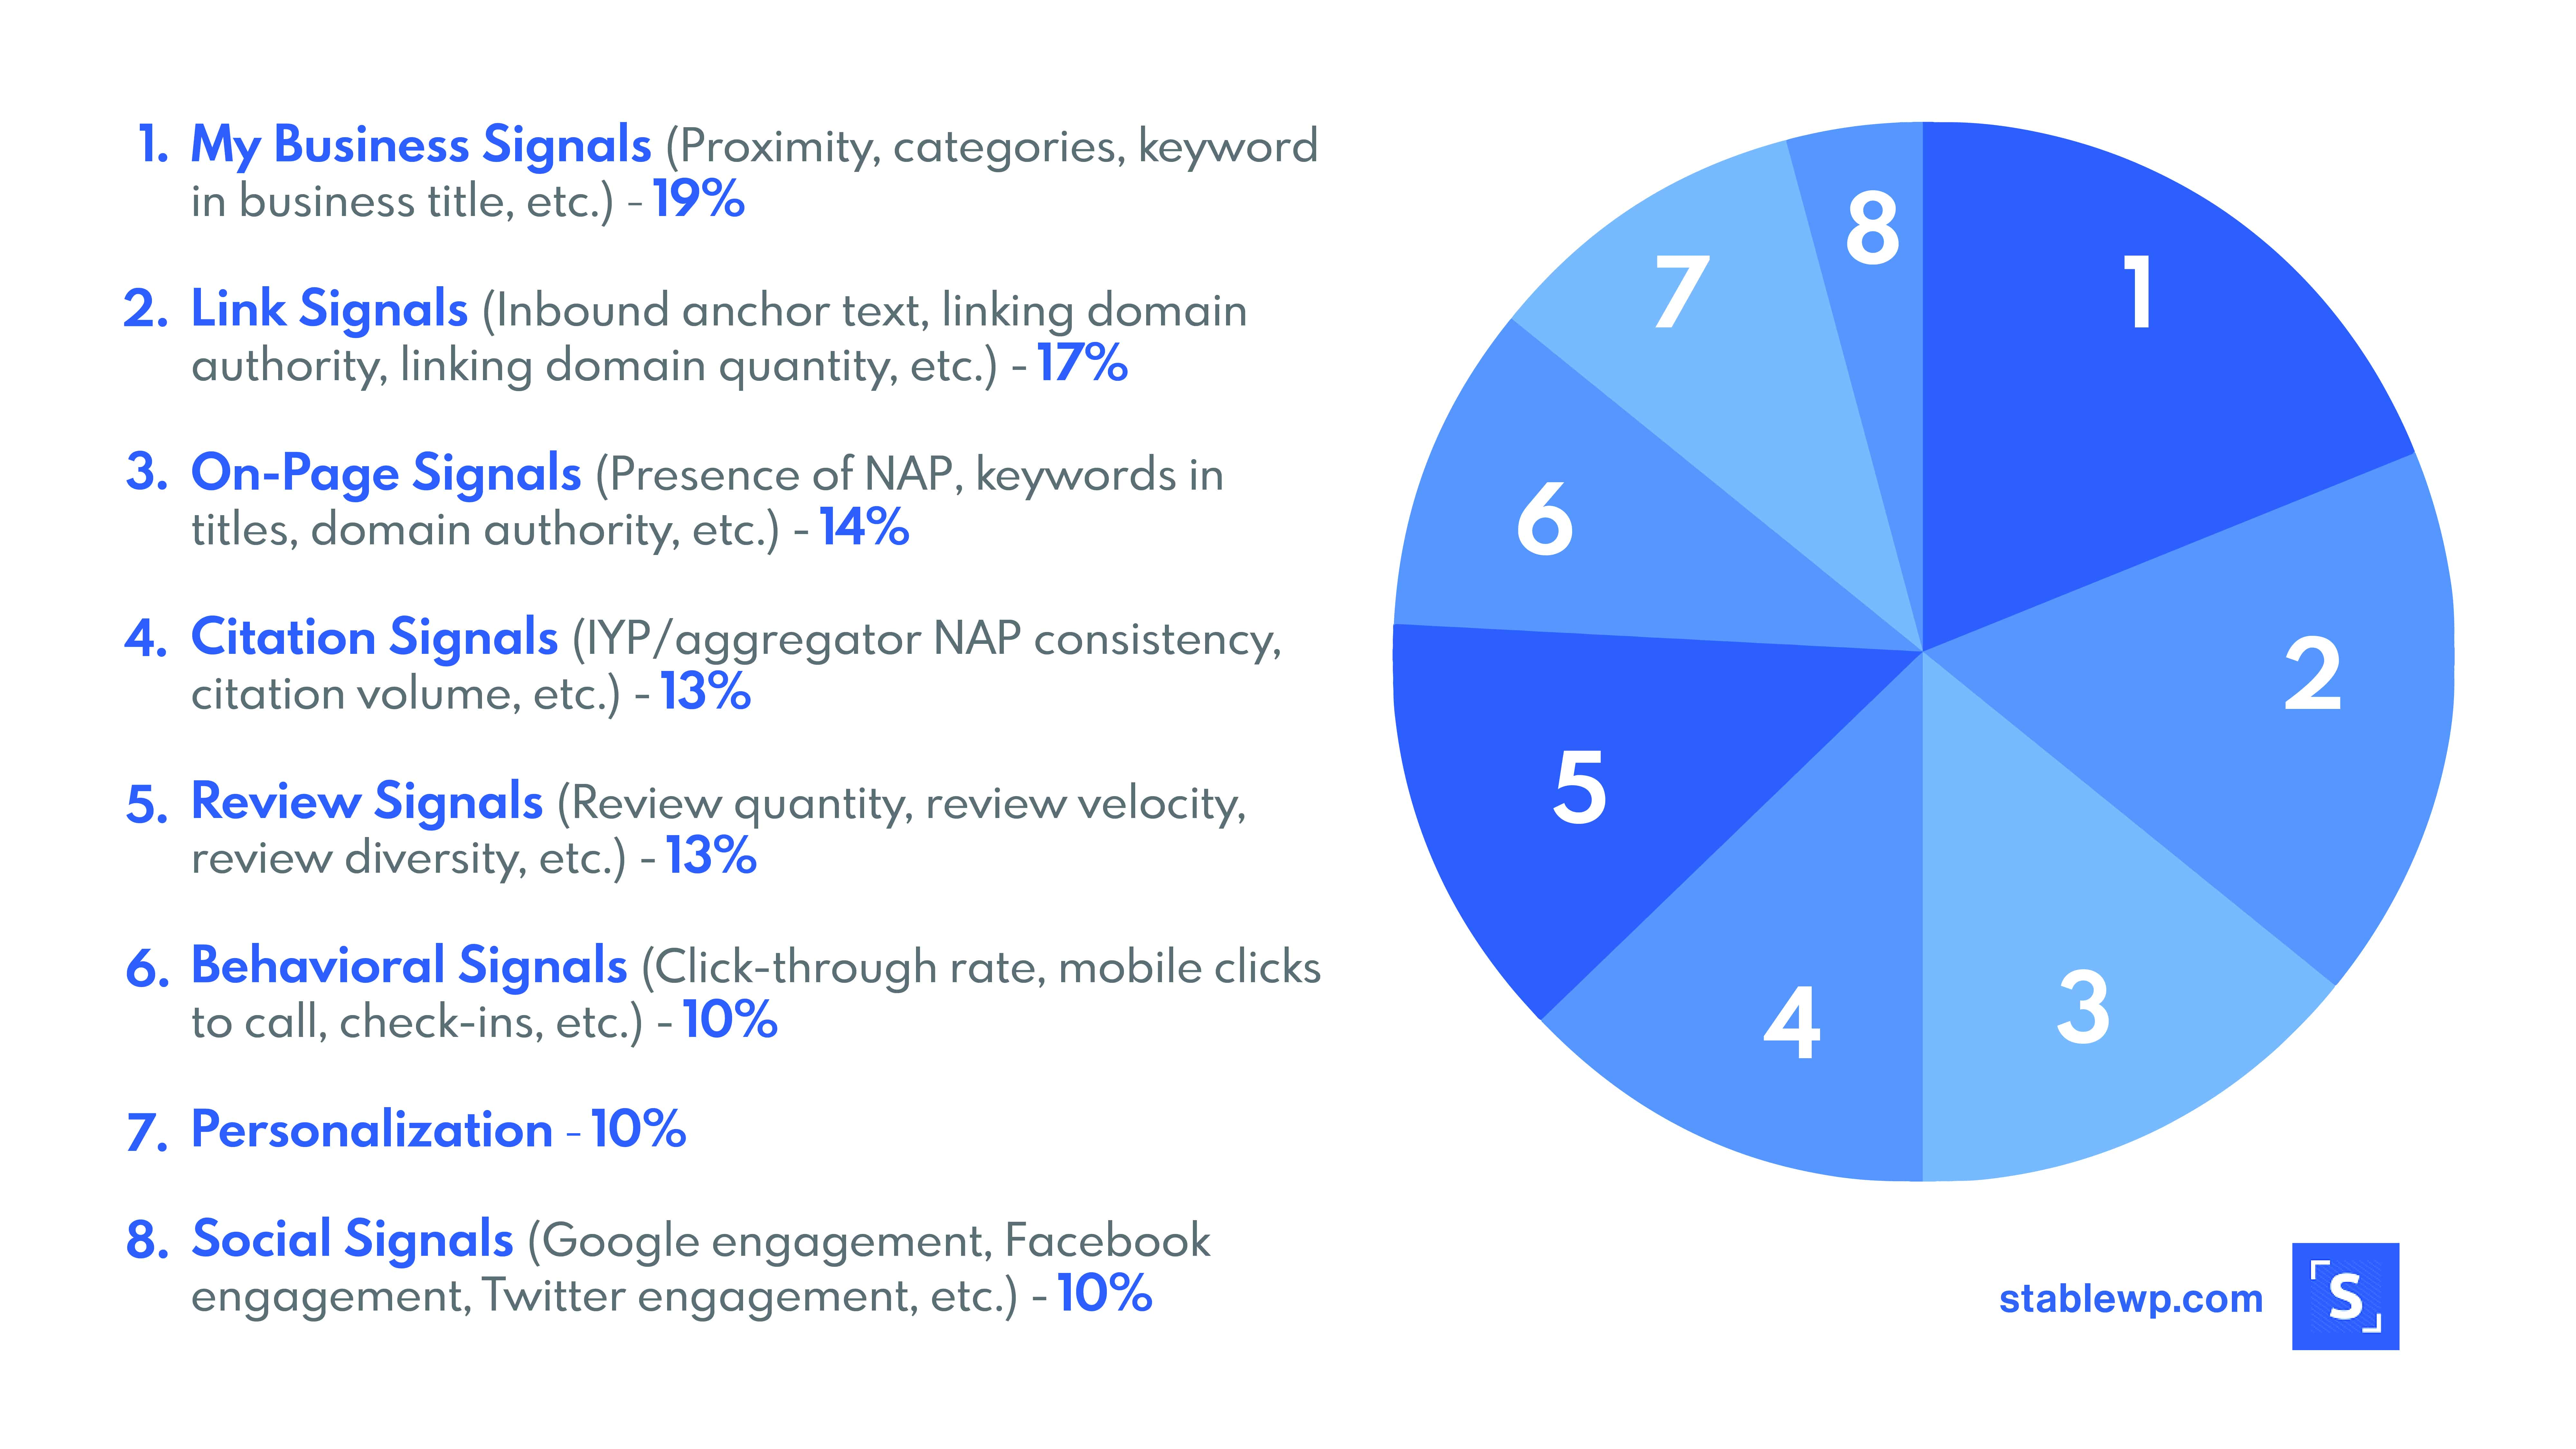 A pie chart showing the most important ranking signals for local searches. It shows the 8 most relevant one's: my business signals, link signals, on-page signals, citation signals, review signals, behavioral signals, personalization and social signals